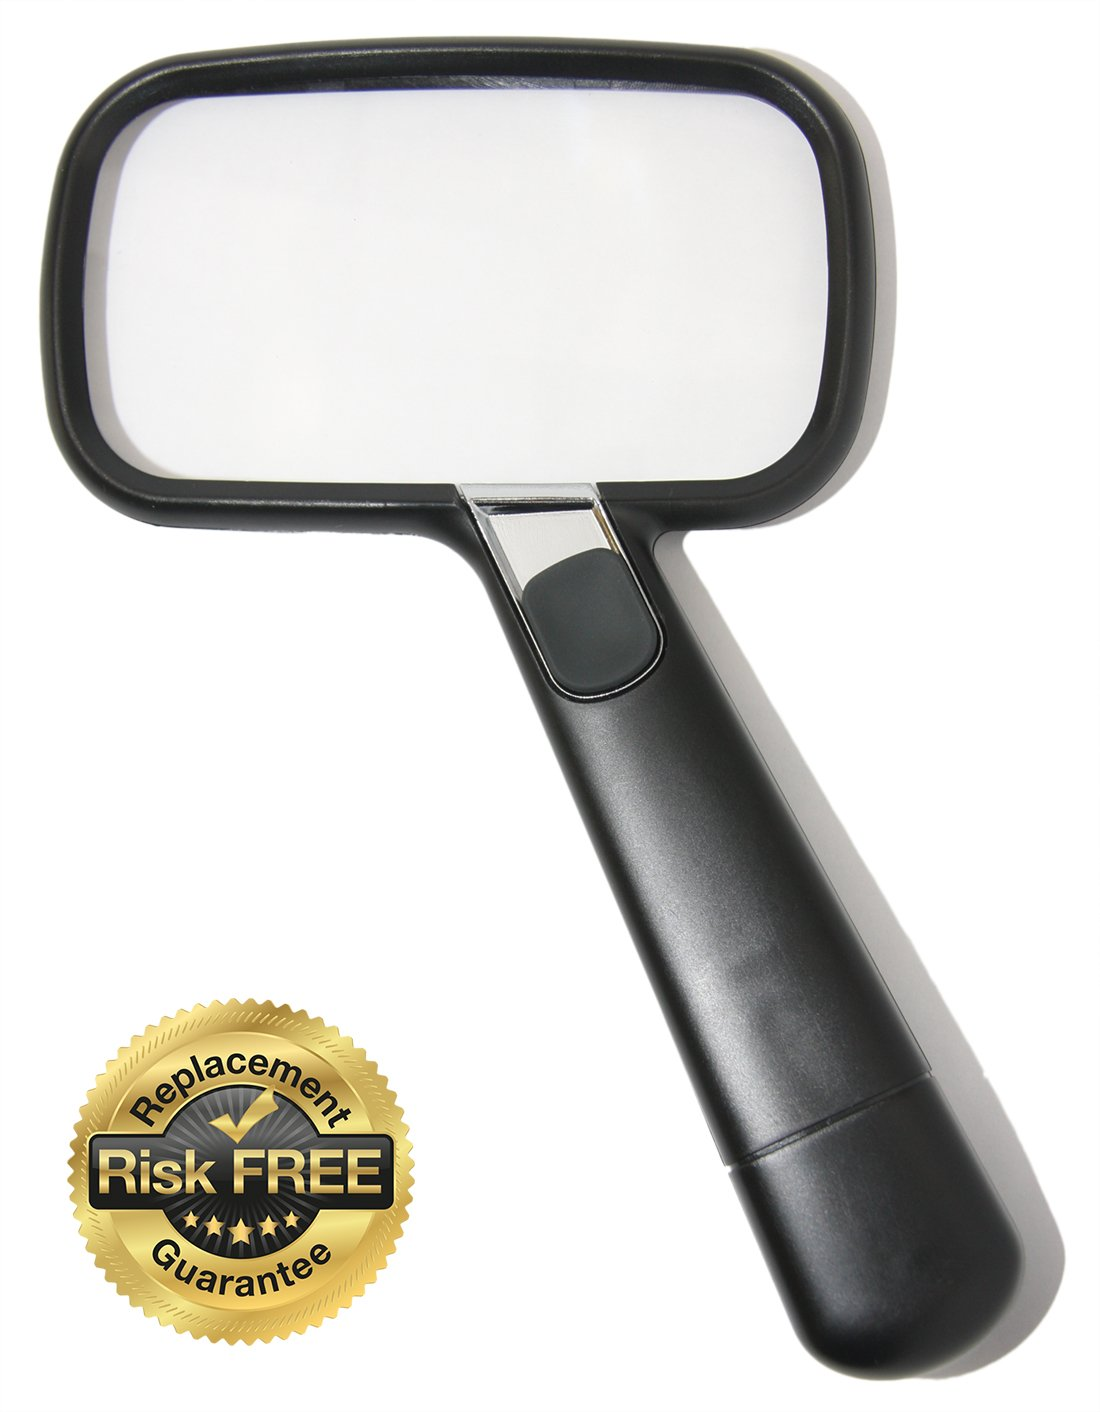 EasY Magnifier Rectangular Magnifying Glass 2X with Bright LED Light Best Large Protected Clear Acrylic Lens; Lighted Lupe For Reading Books Newspaper Maps, Low Vision Aid Macular Degeneration